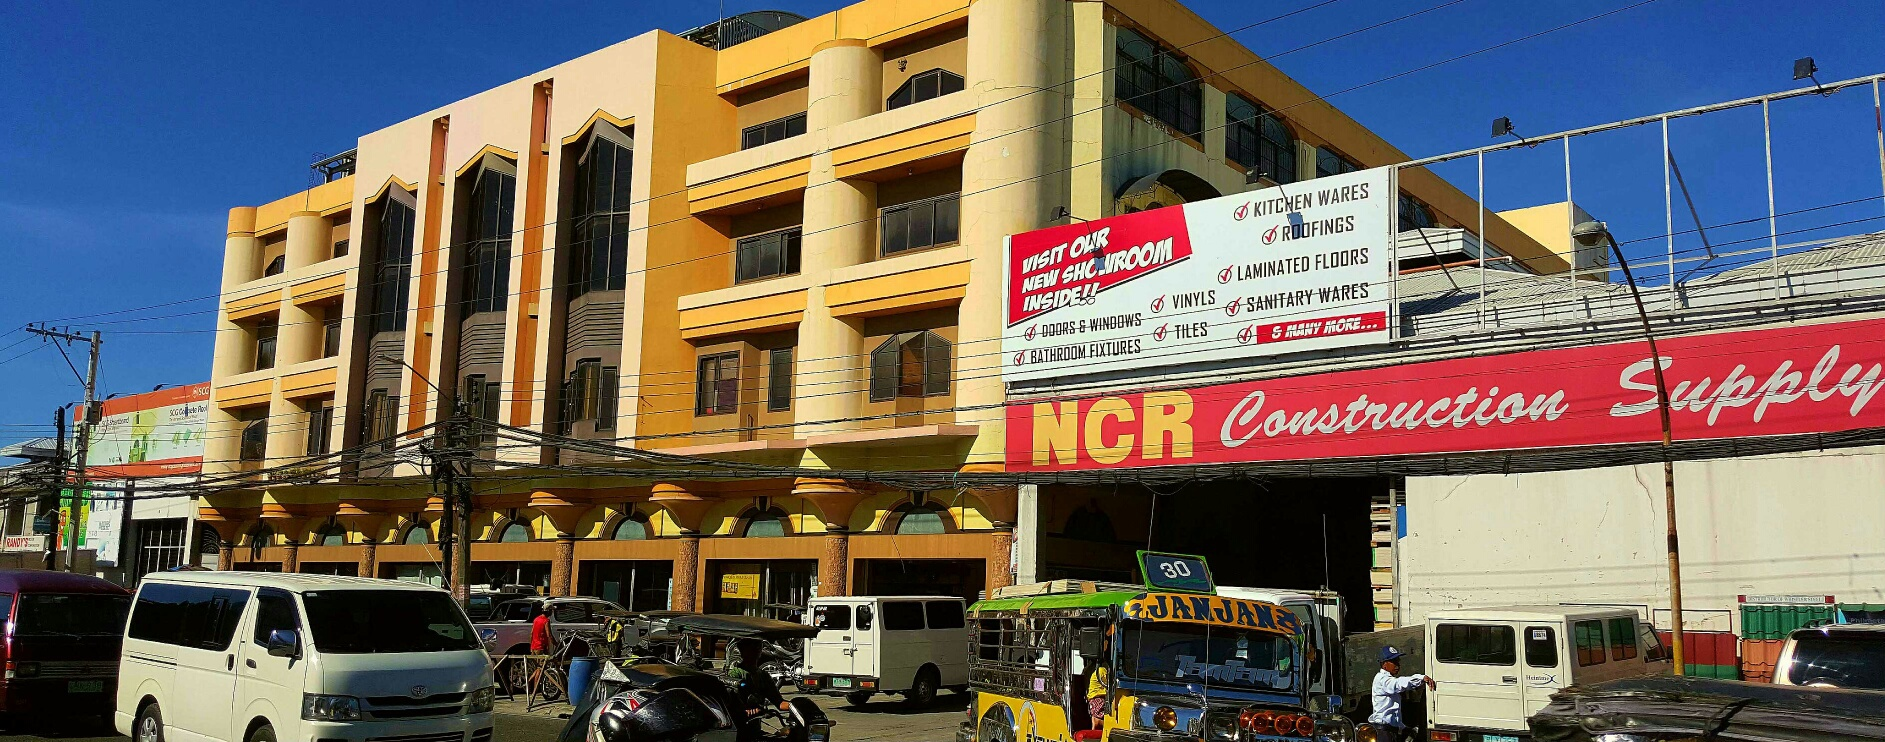 NCR Construction Supply - Products